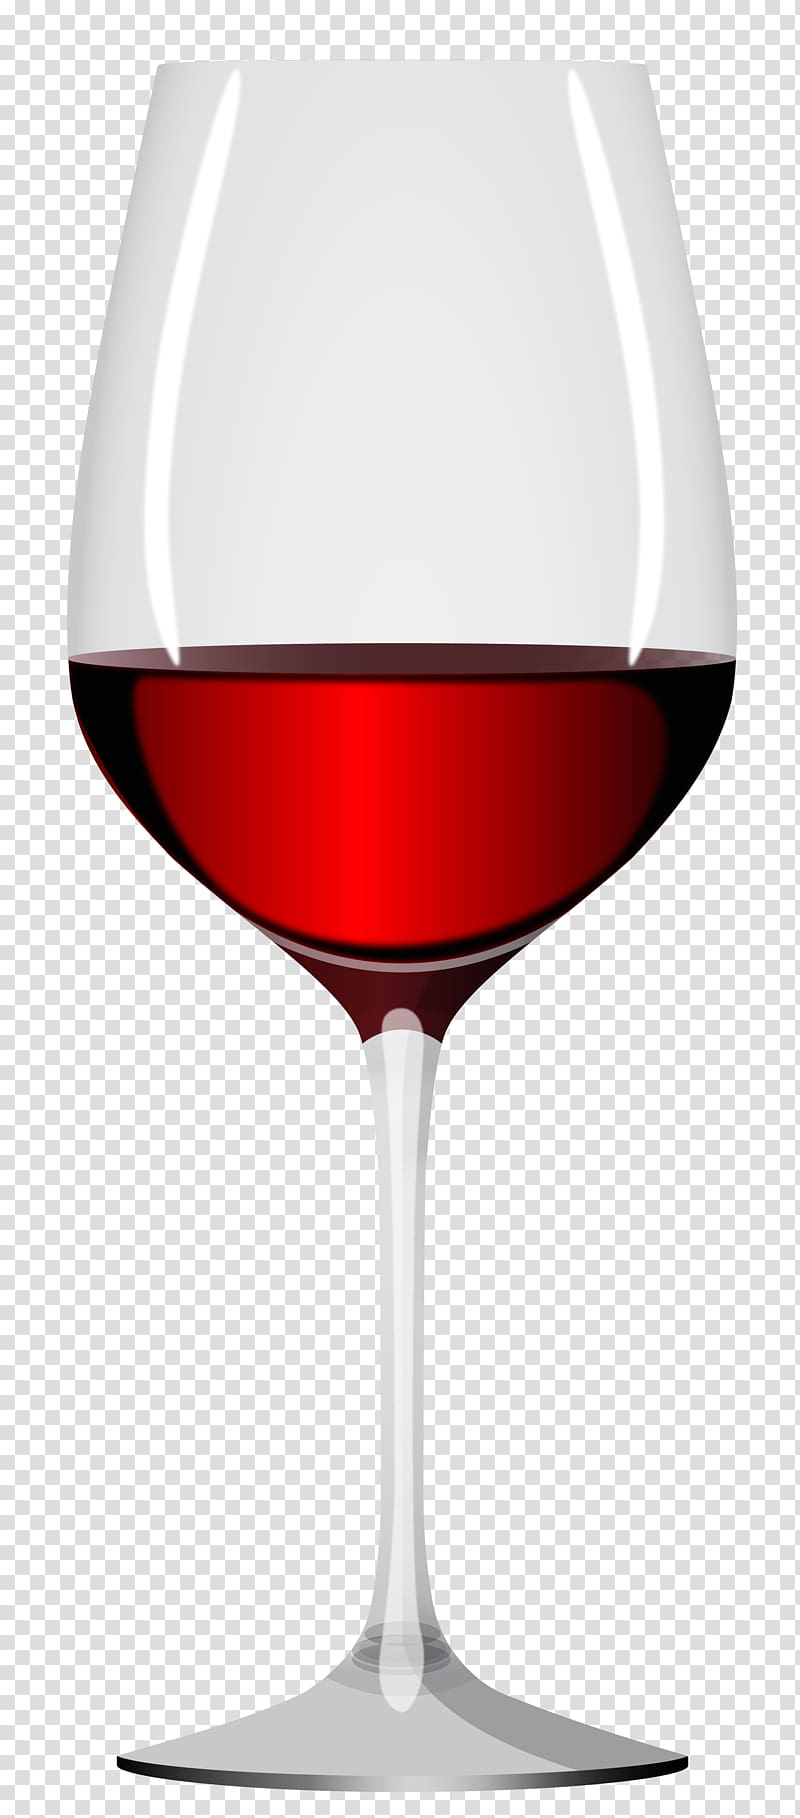 Red filled wine glass illustration, Red Wine Champagne Wine glass.